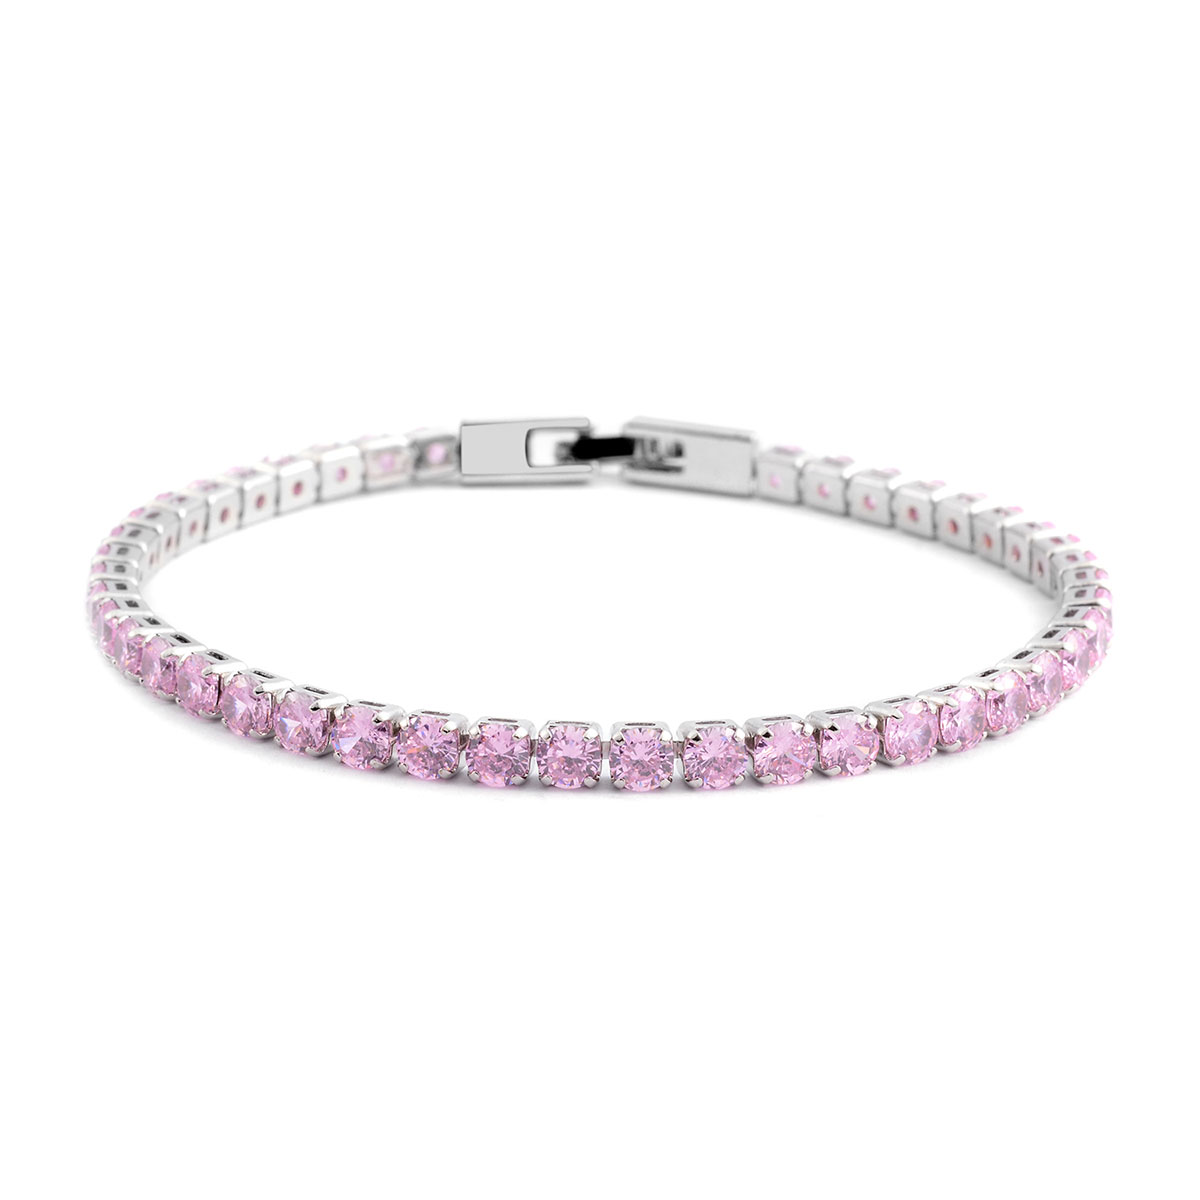 New Round Pink Cubic Zirconia Tennis Bracelet For Women 8 ...